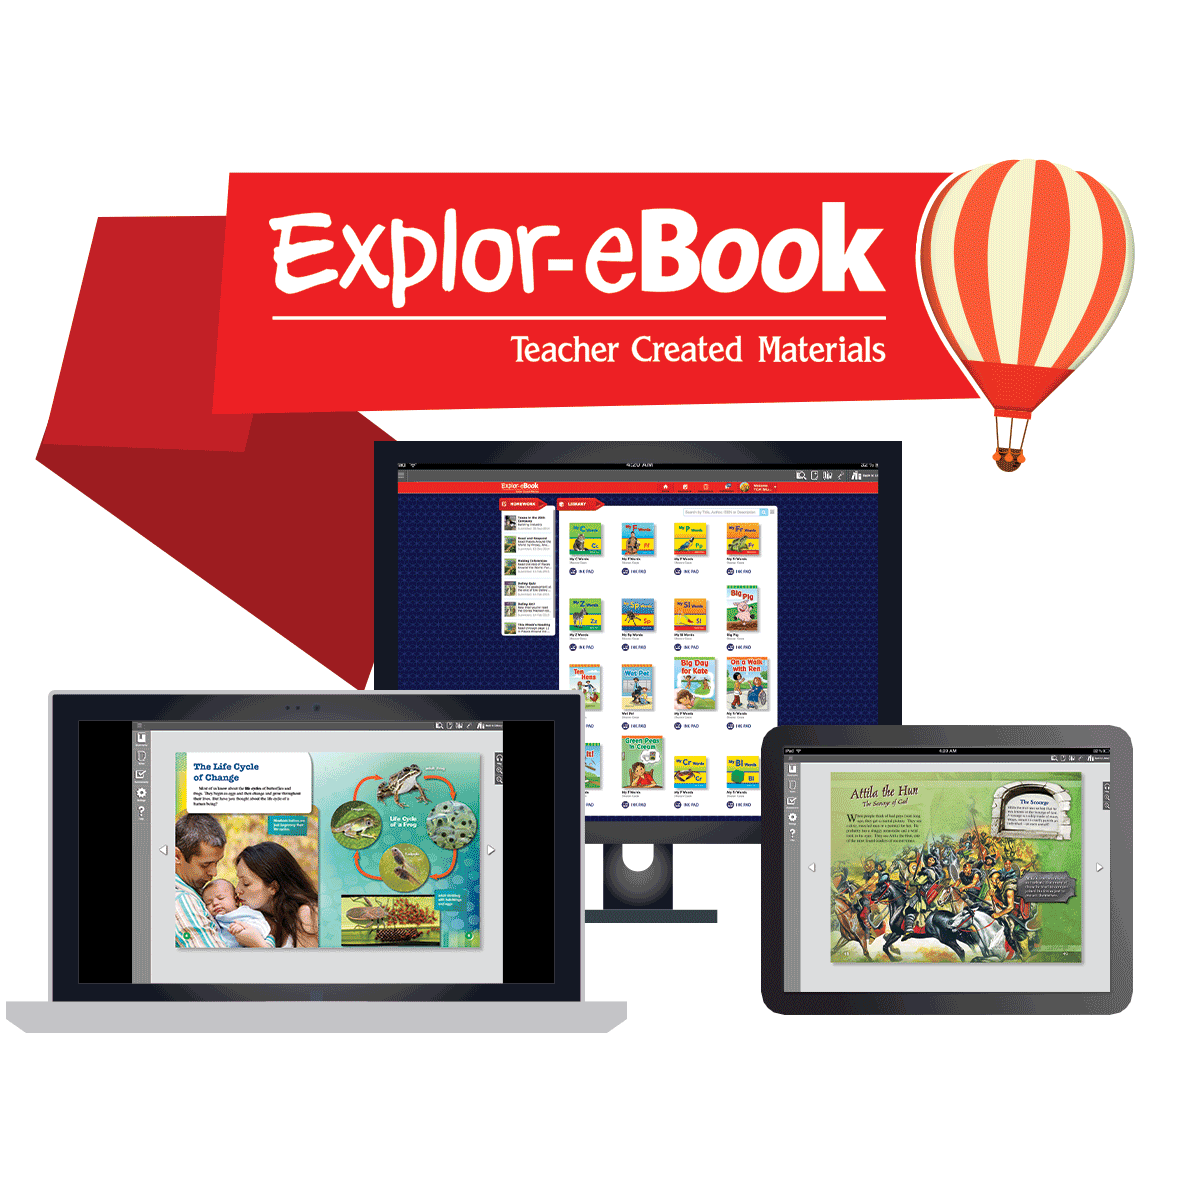 Explor-eBook Digital Library